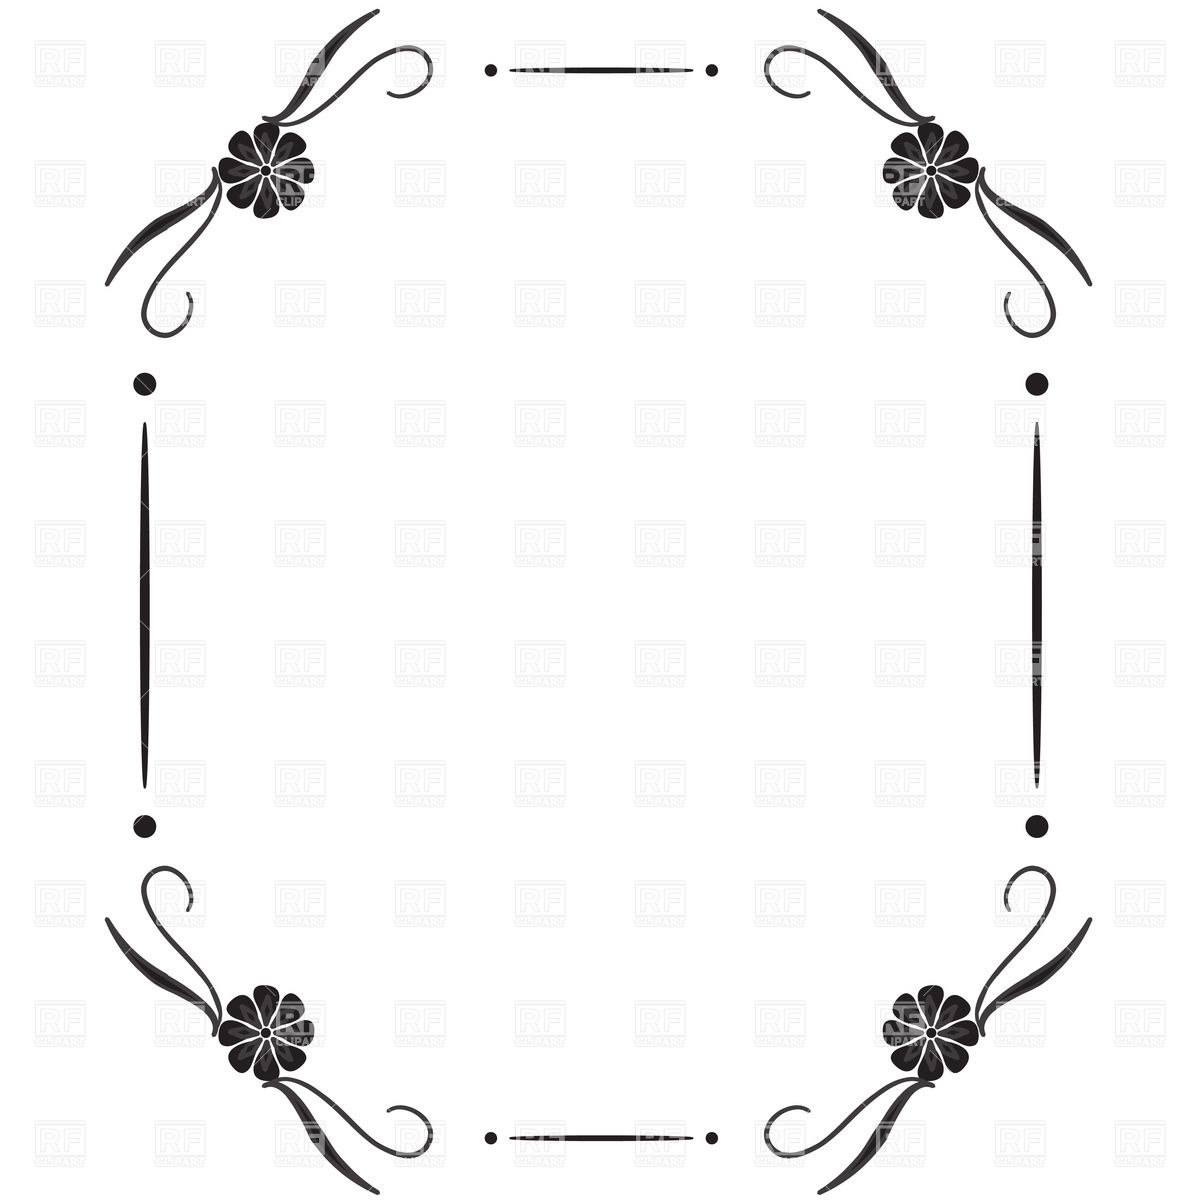 1200x1200 Simple Square Vintage Frame With Vignettes In Corner Royalty Free